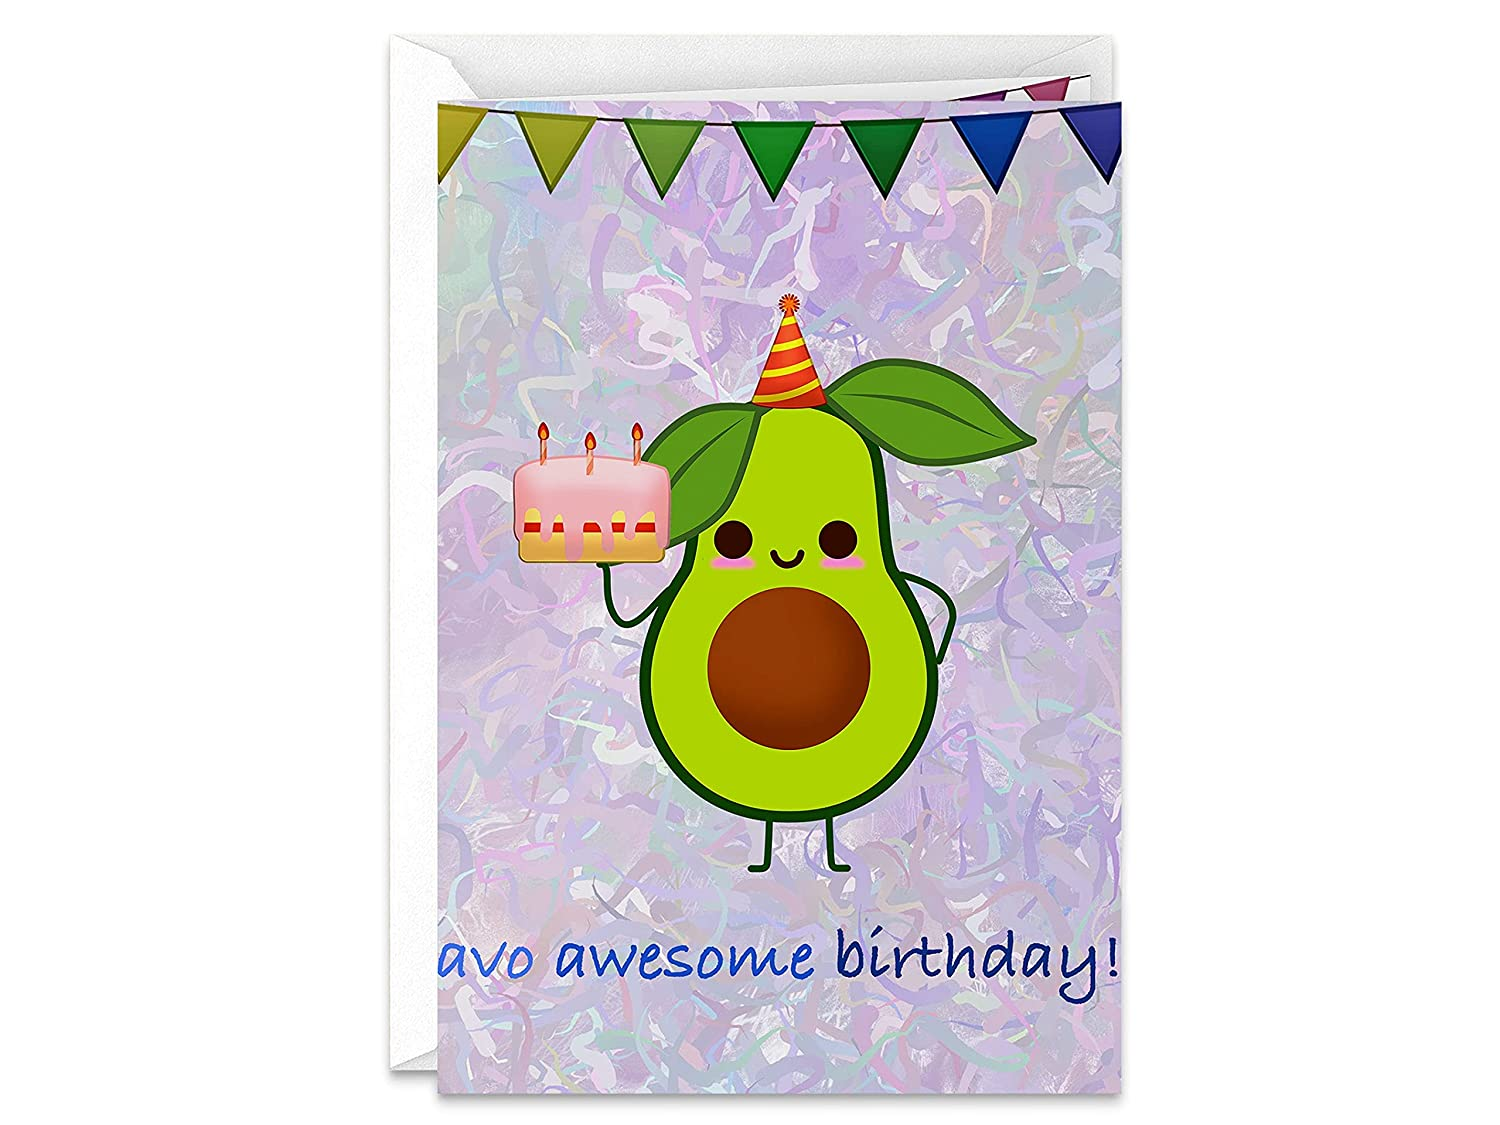 Have Direct store an Awesome Birthday Brand new Avocado themed Party Han Happy